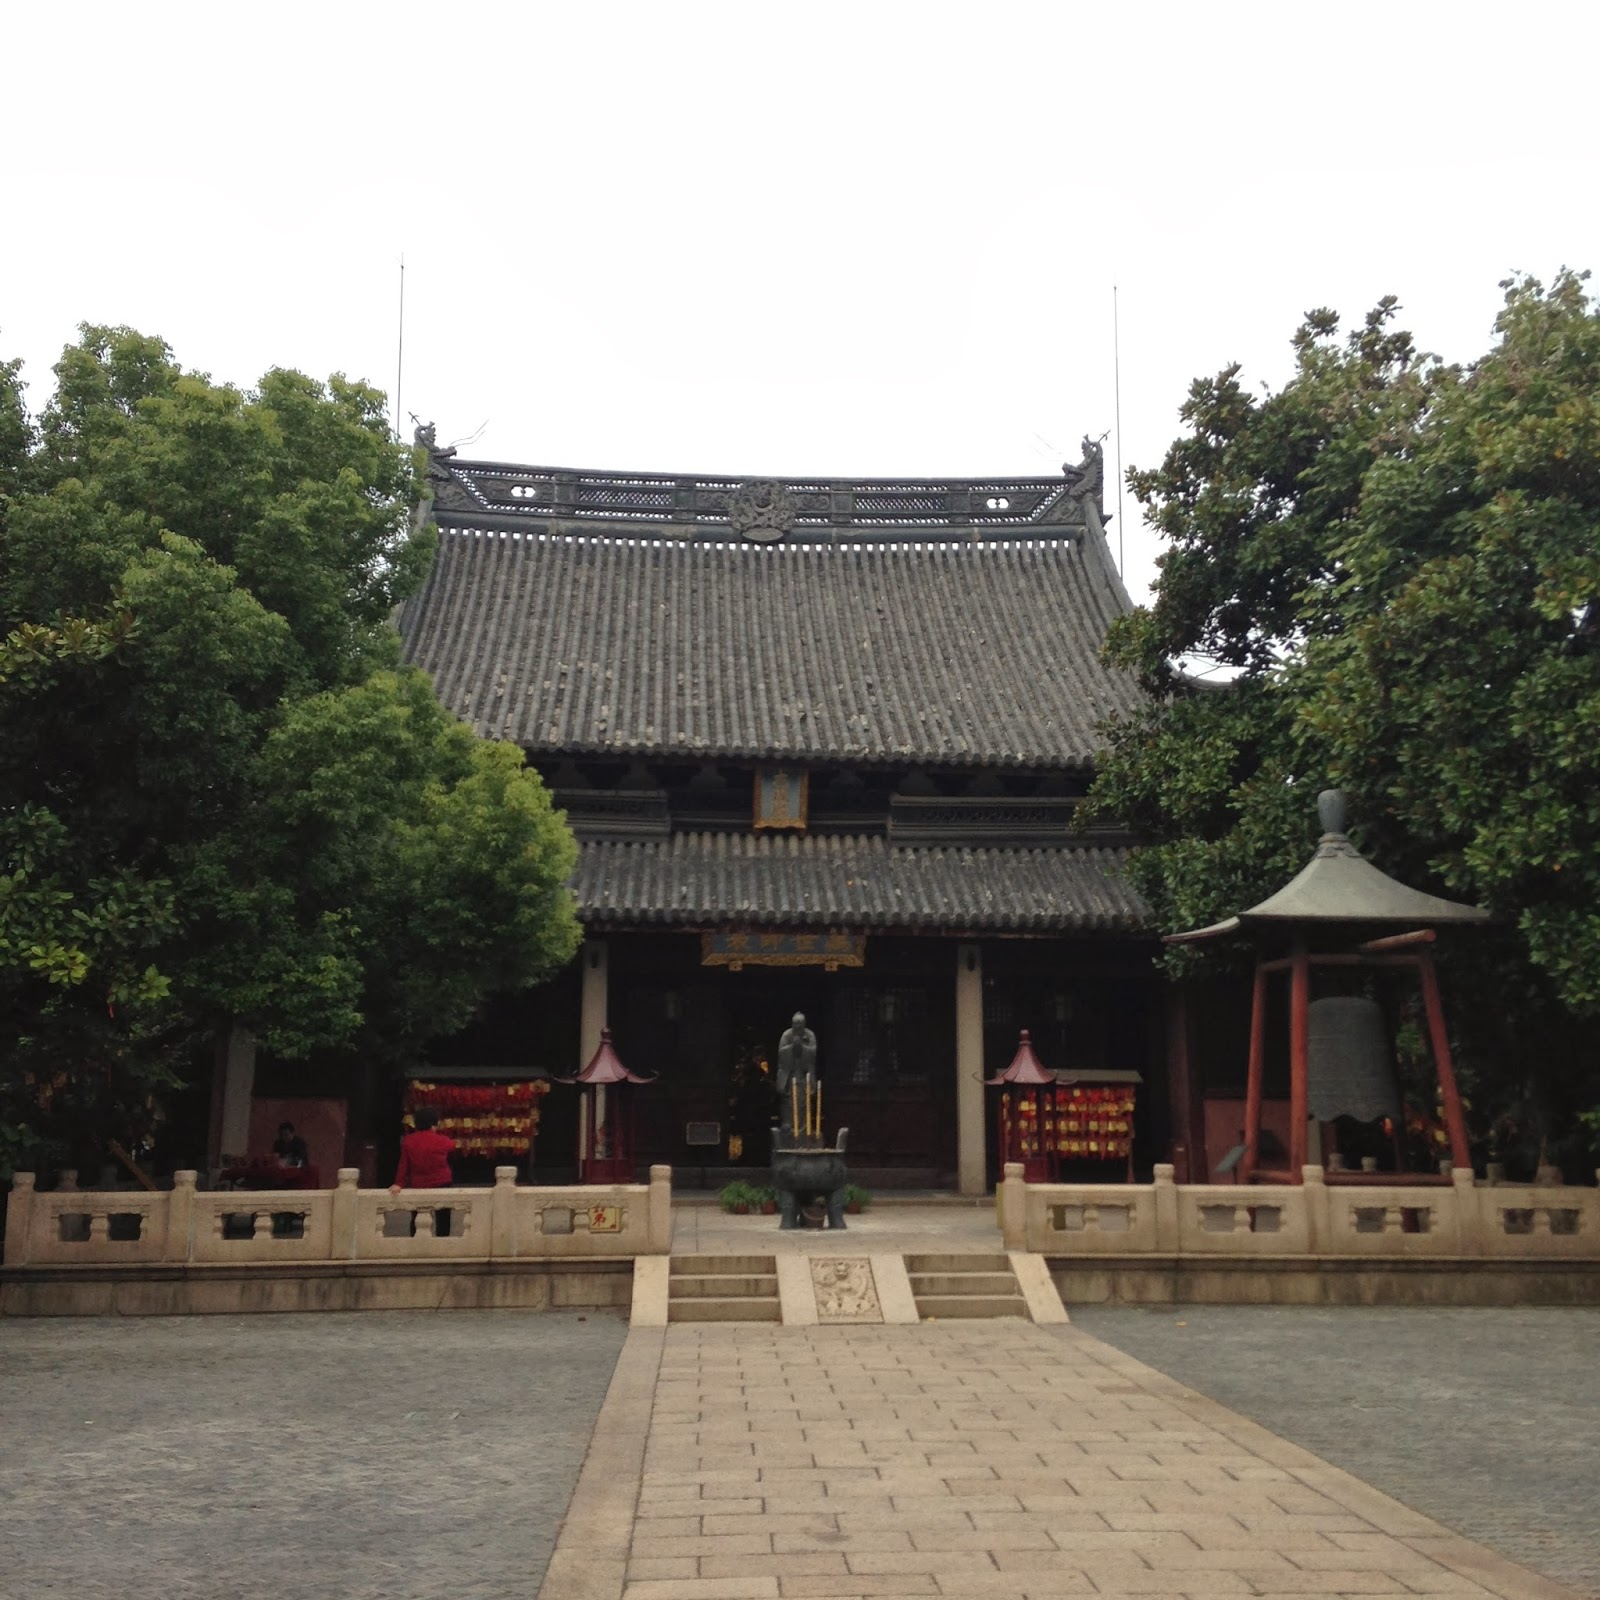 the main premise and center of the confucian teachings What does confucianism center on  what was confucius's main premise  the collected teachings of mencius, one of the four books of confucianism.